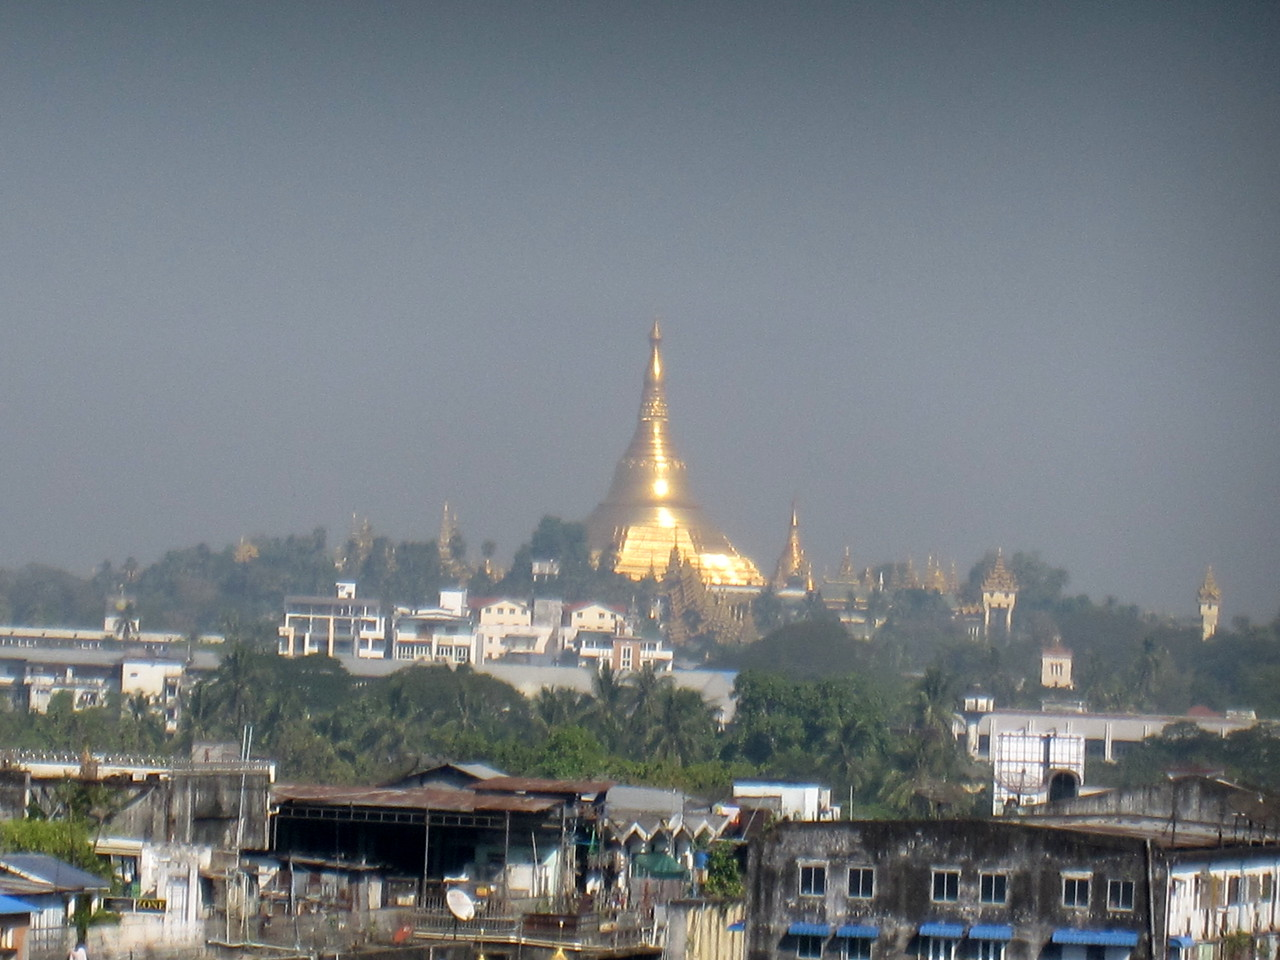 Shwedagon Paya is huge in the distance from the White House hotel in Yangon, Myanmar (Burma)